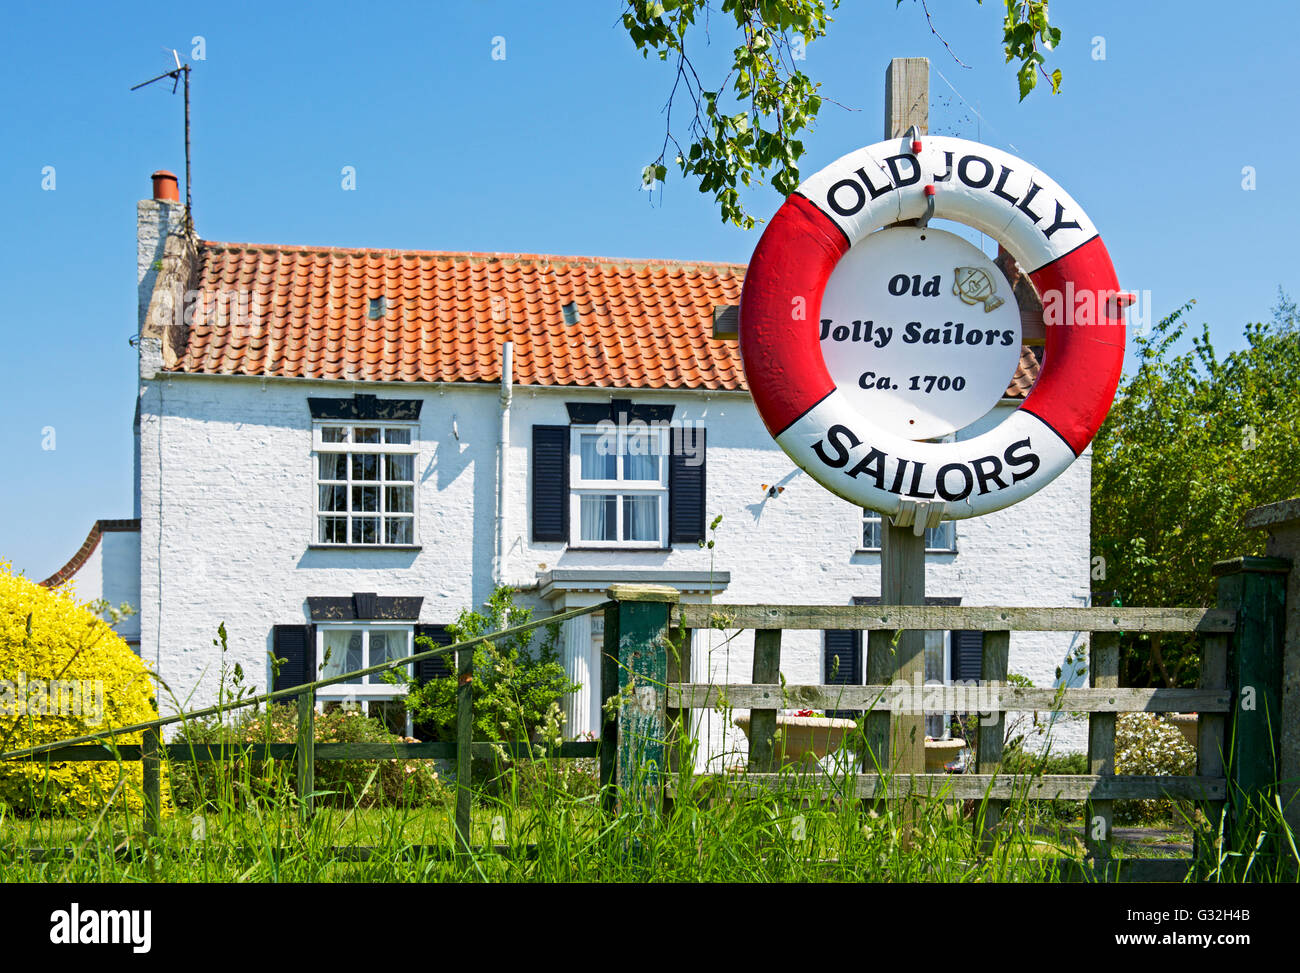 Chambre - une fois le Jolly Sailor pub - à Fishtoft, près de Boston, Lincolnshire, Angleterre, Royaume Photo Stock